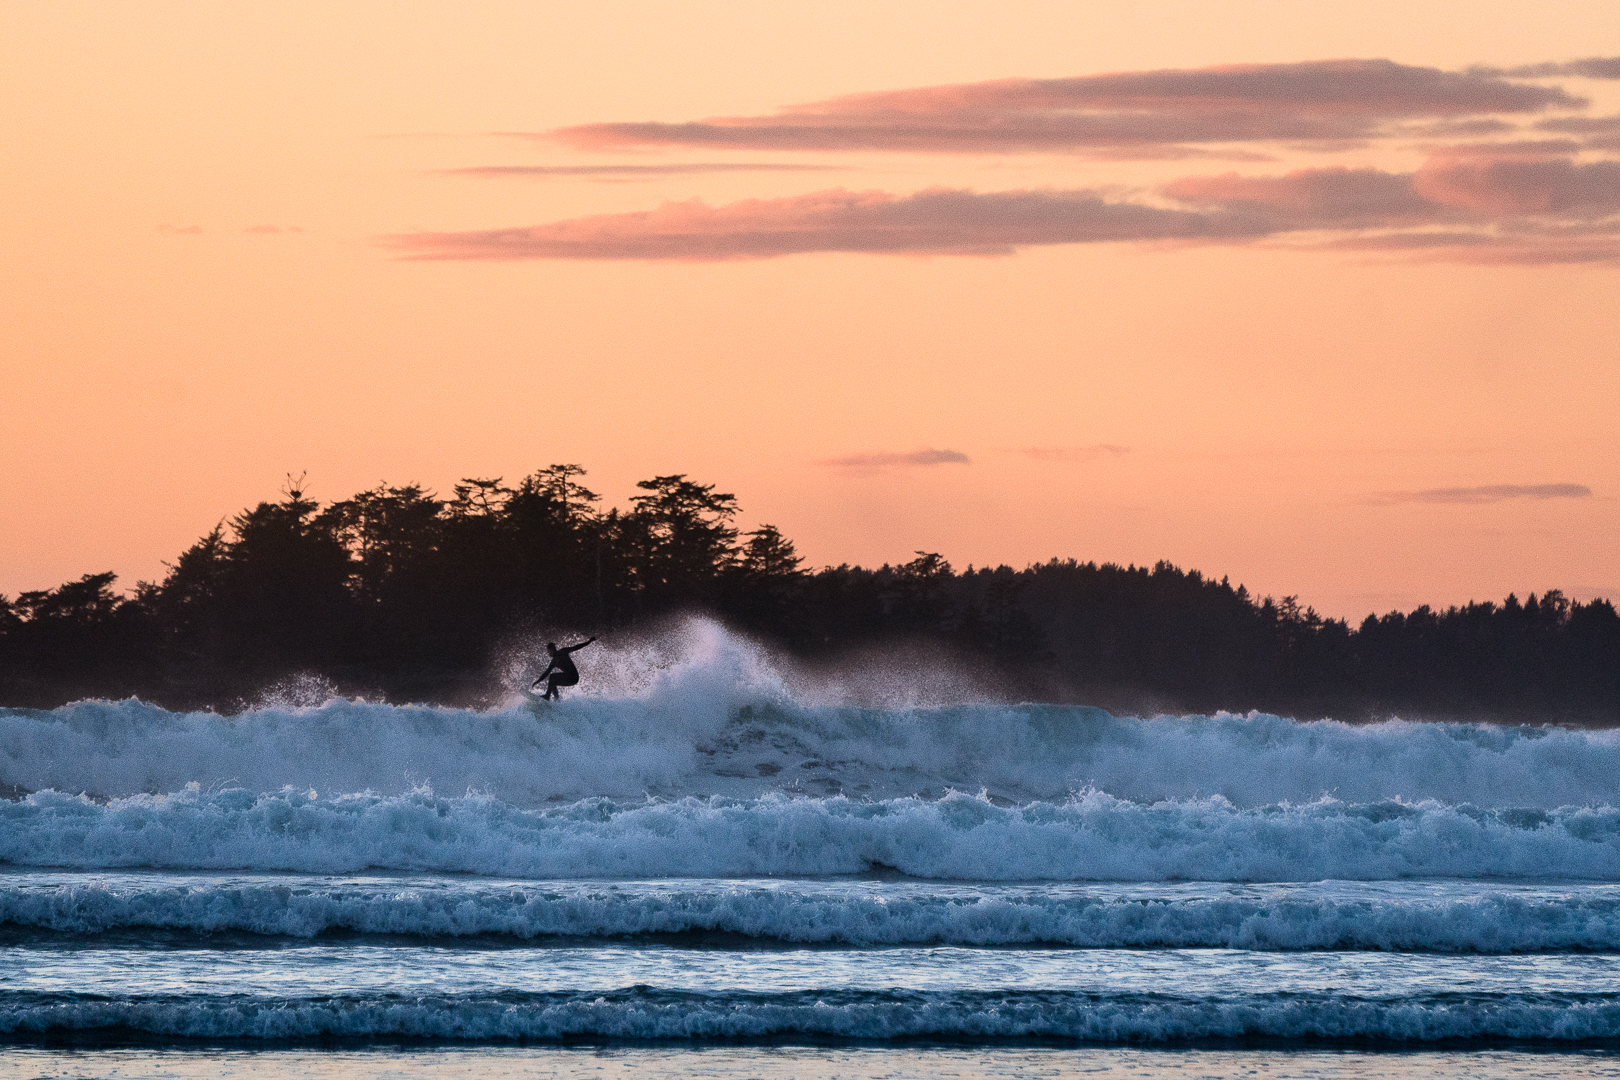 tofino-surfing-long-beach-herron-00733.jpg